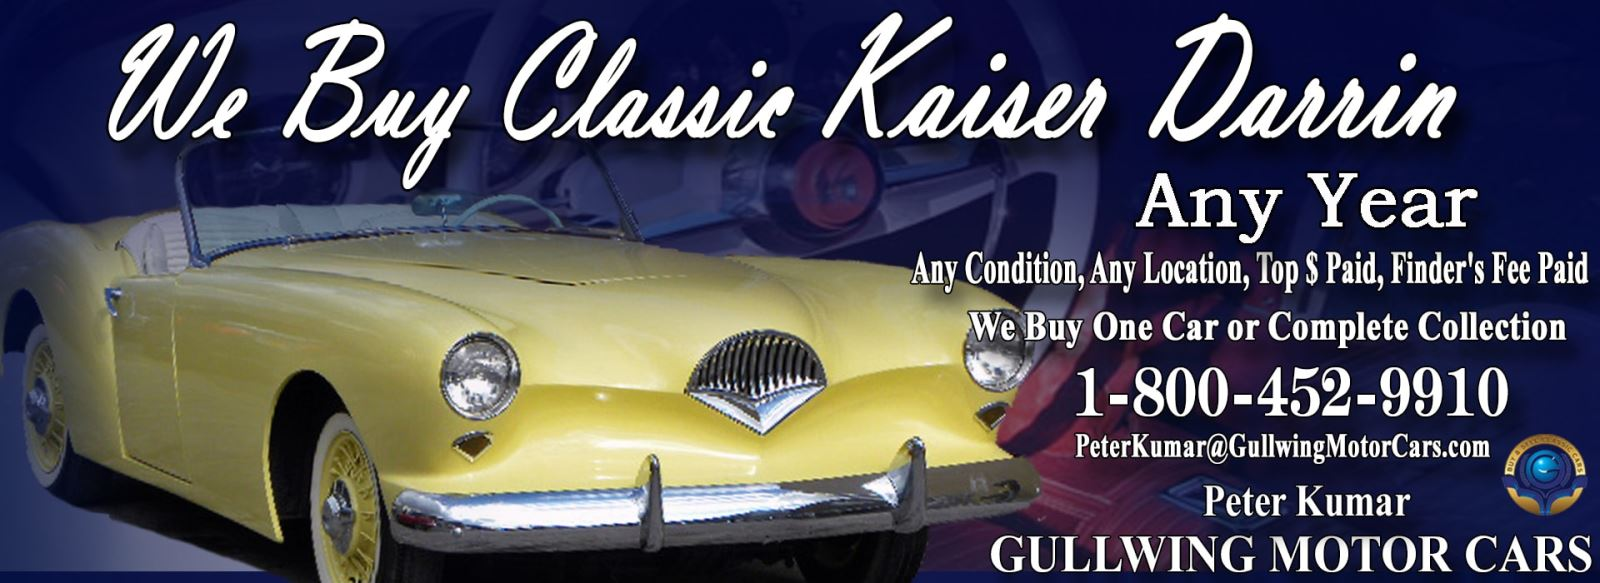 Classic Kaiser Darrin for sale, we buy vintage Kaiser Darrin. Call Peter Kumar. Gullwing Motor